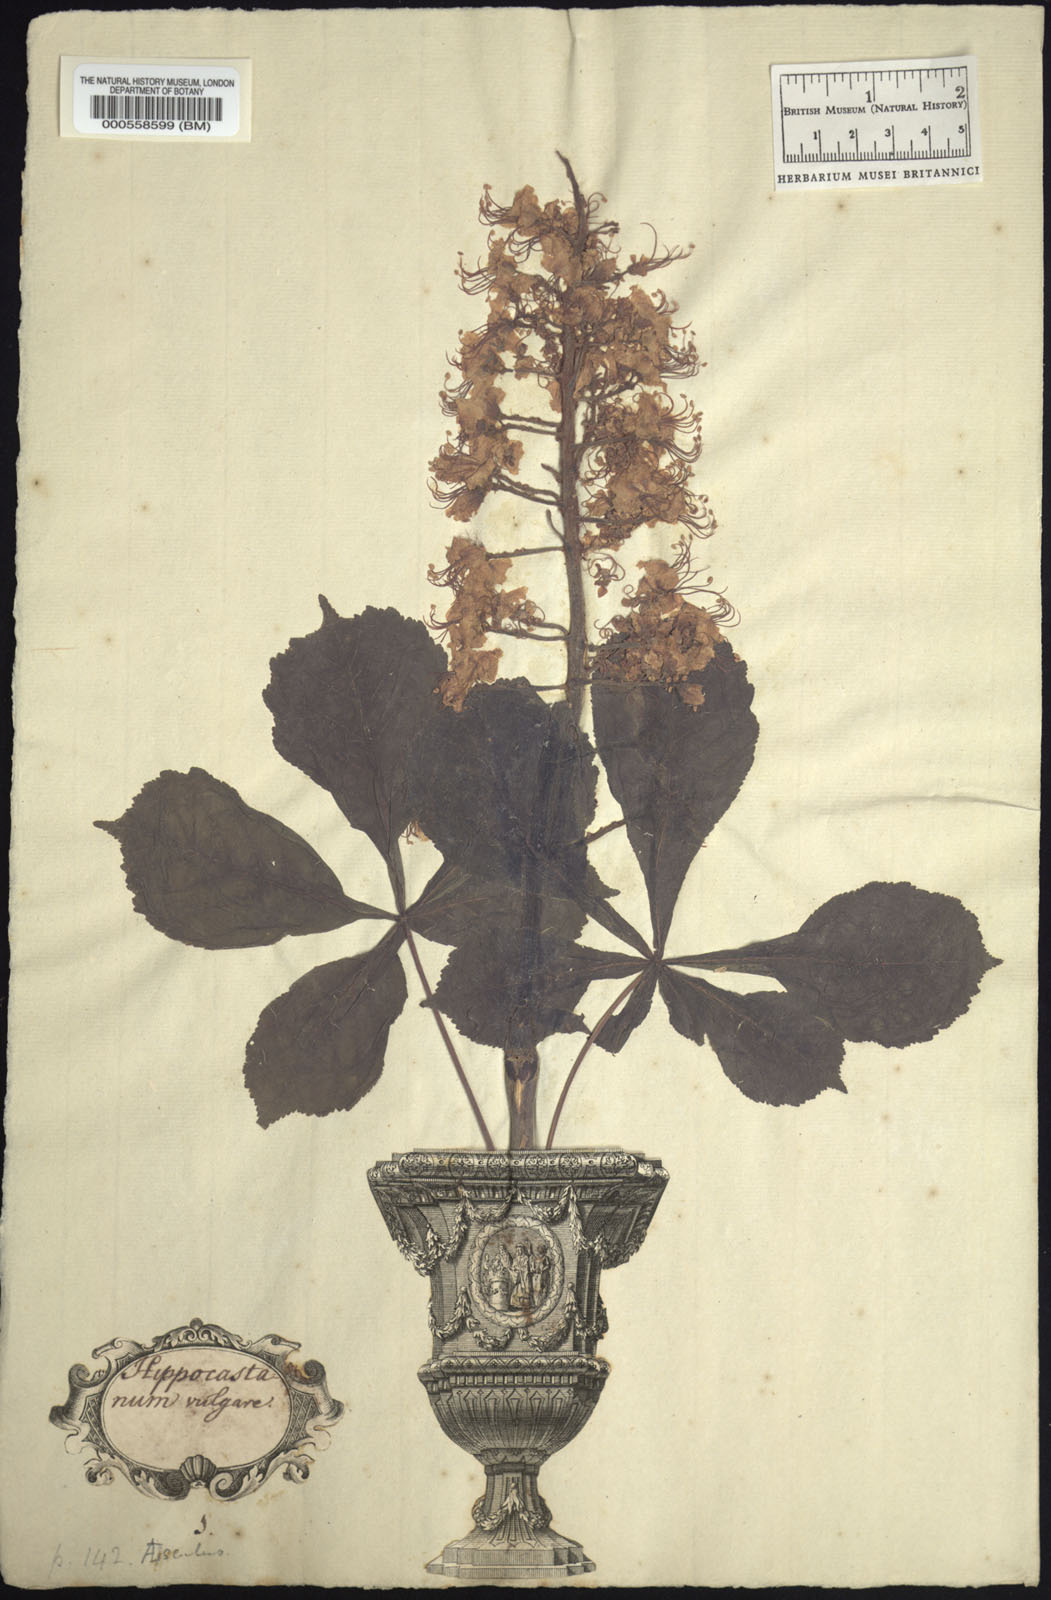 https://www.nhm.ac.uk//resources/research-curation/projects/clifford-herbarium/lgimages/BM000558599.JPG